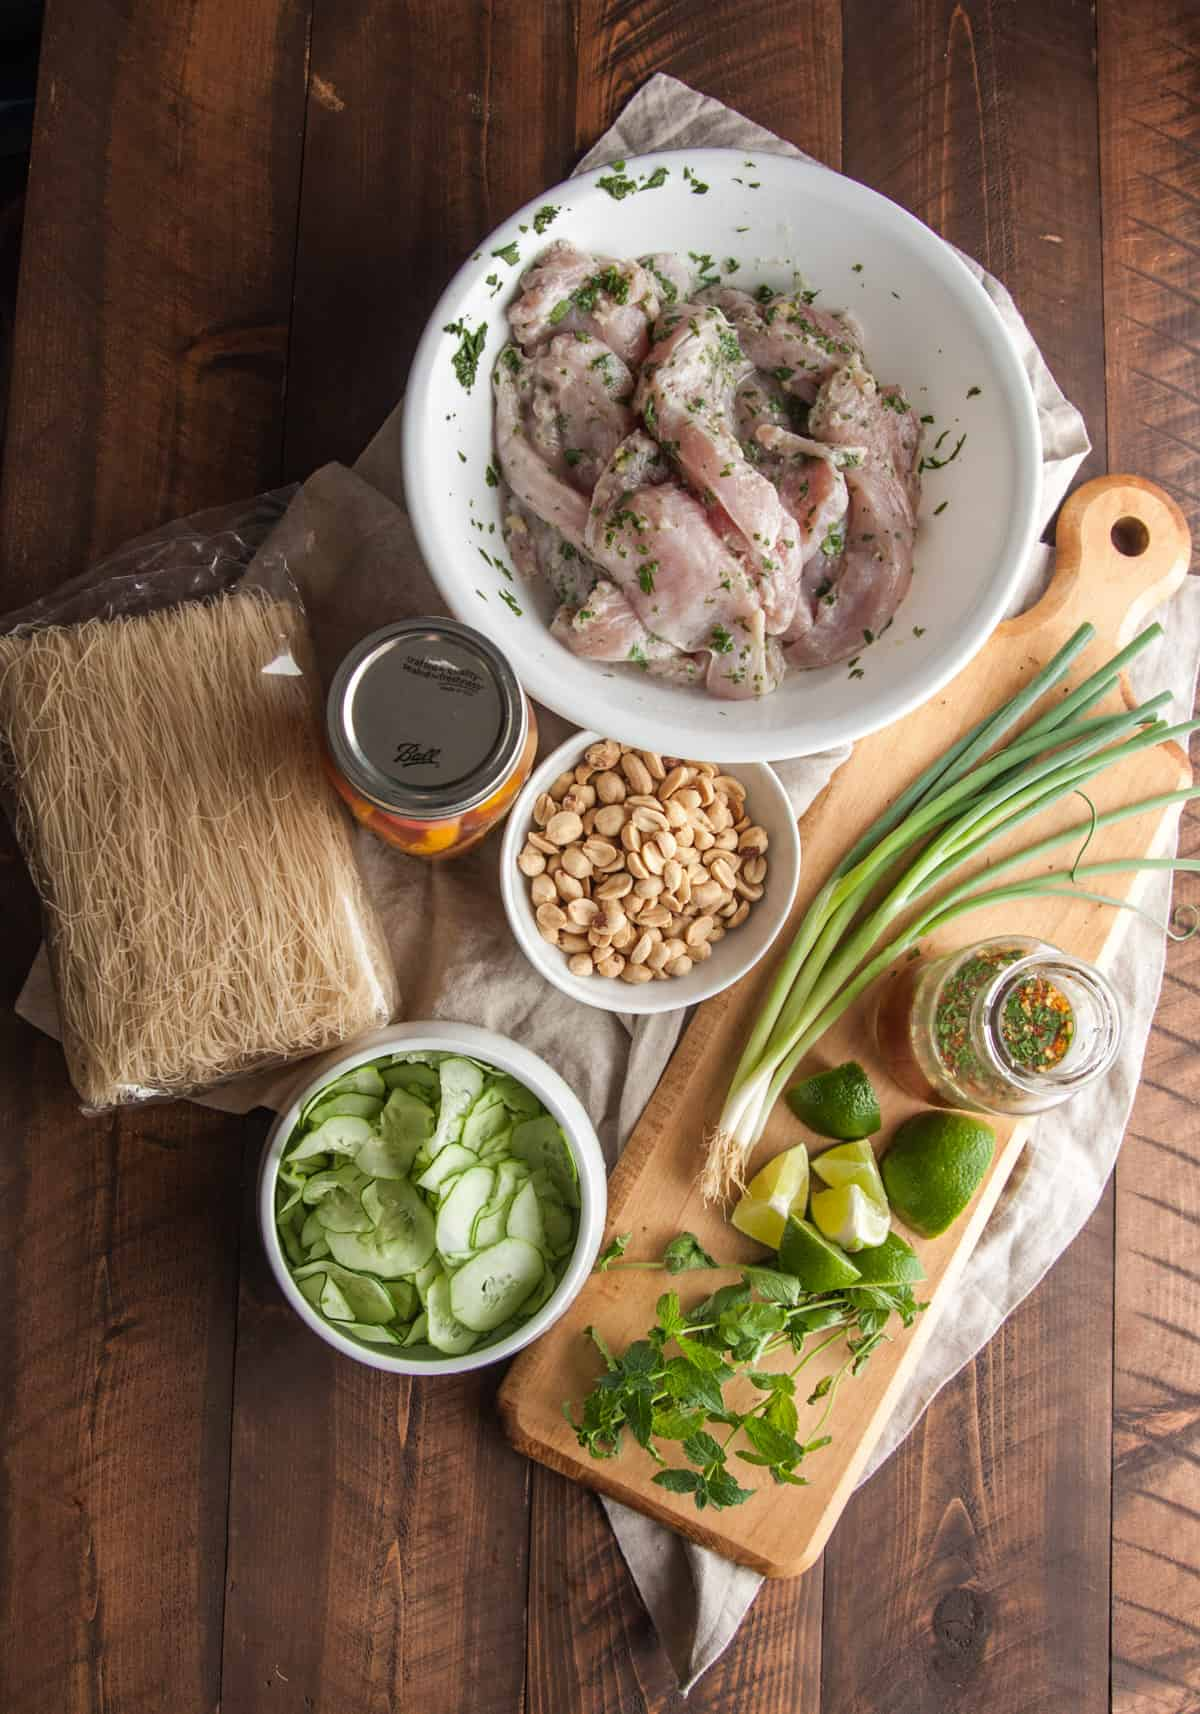 Vietnamese chicken rice noodle salad ingredients from @sweetphi